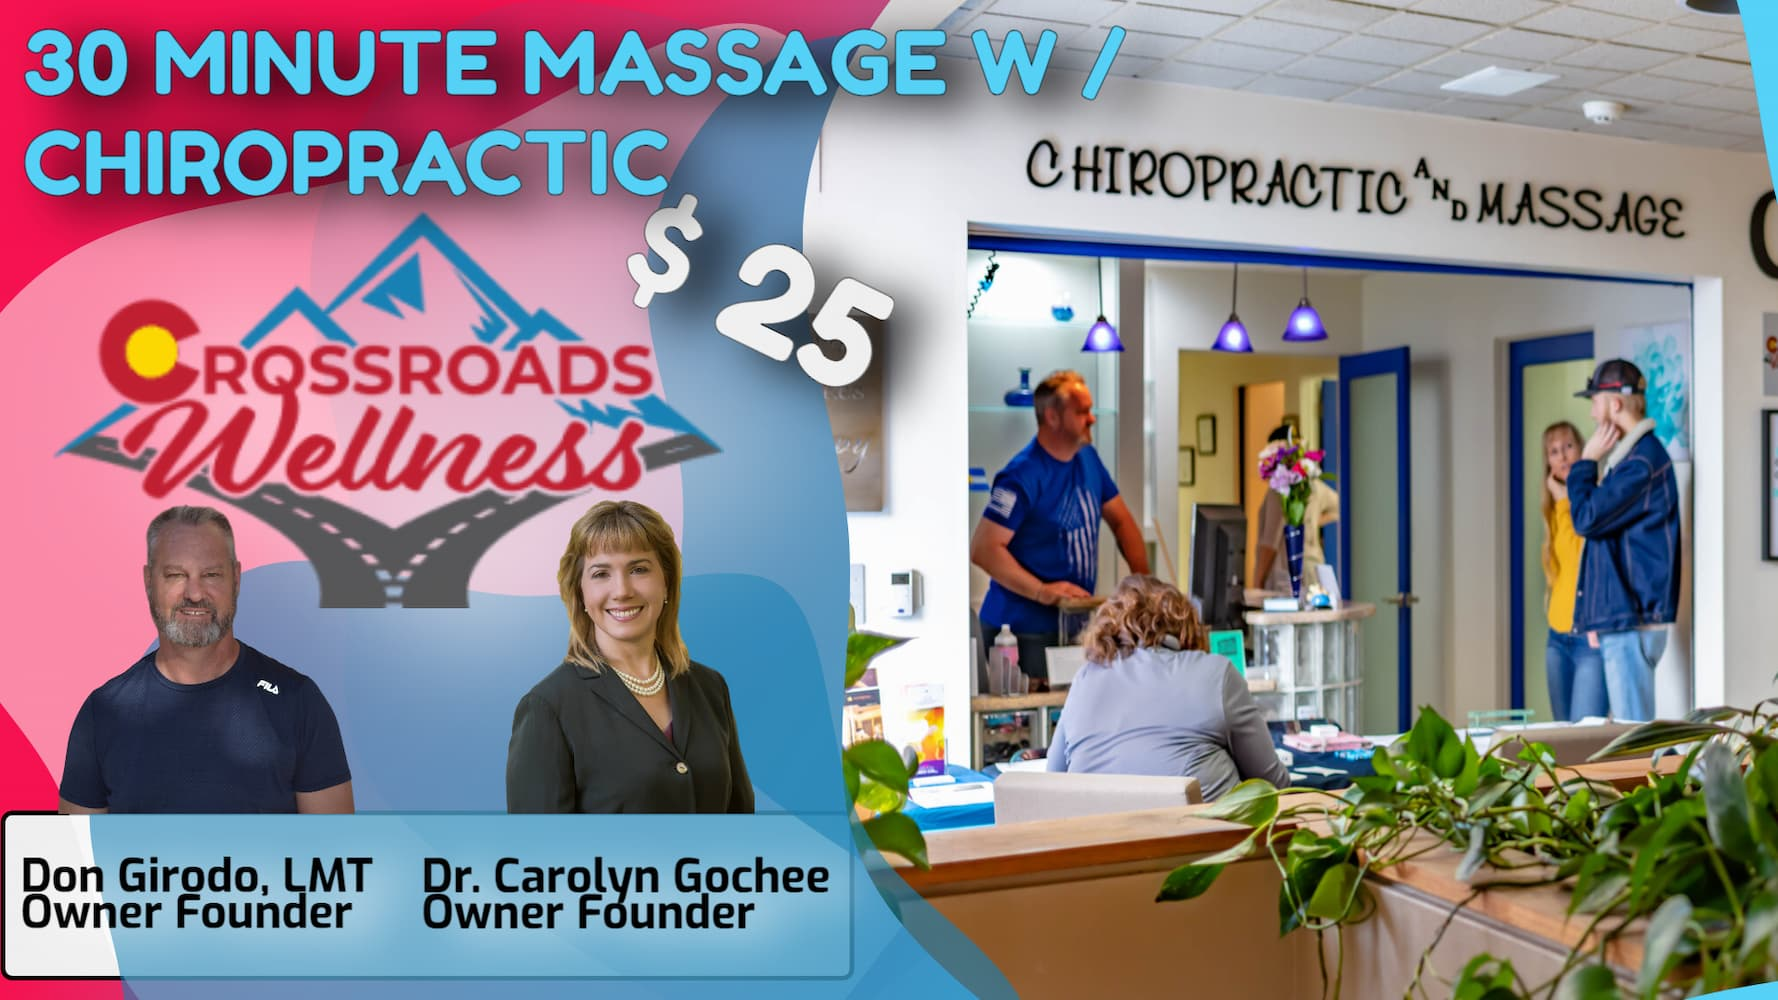 30 MINUTE MASSAGE With CHIROPRACTIC